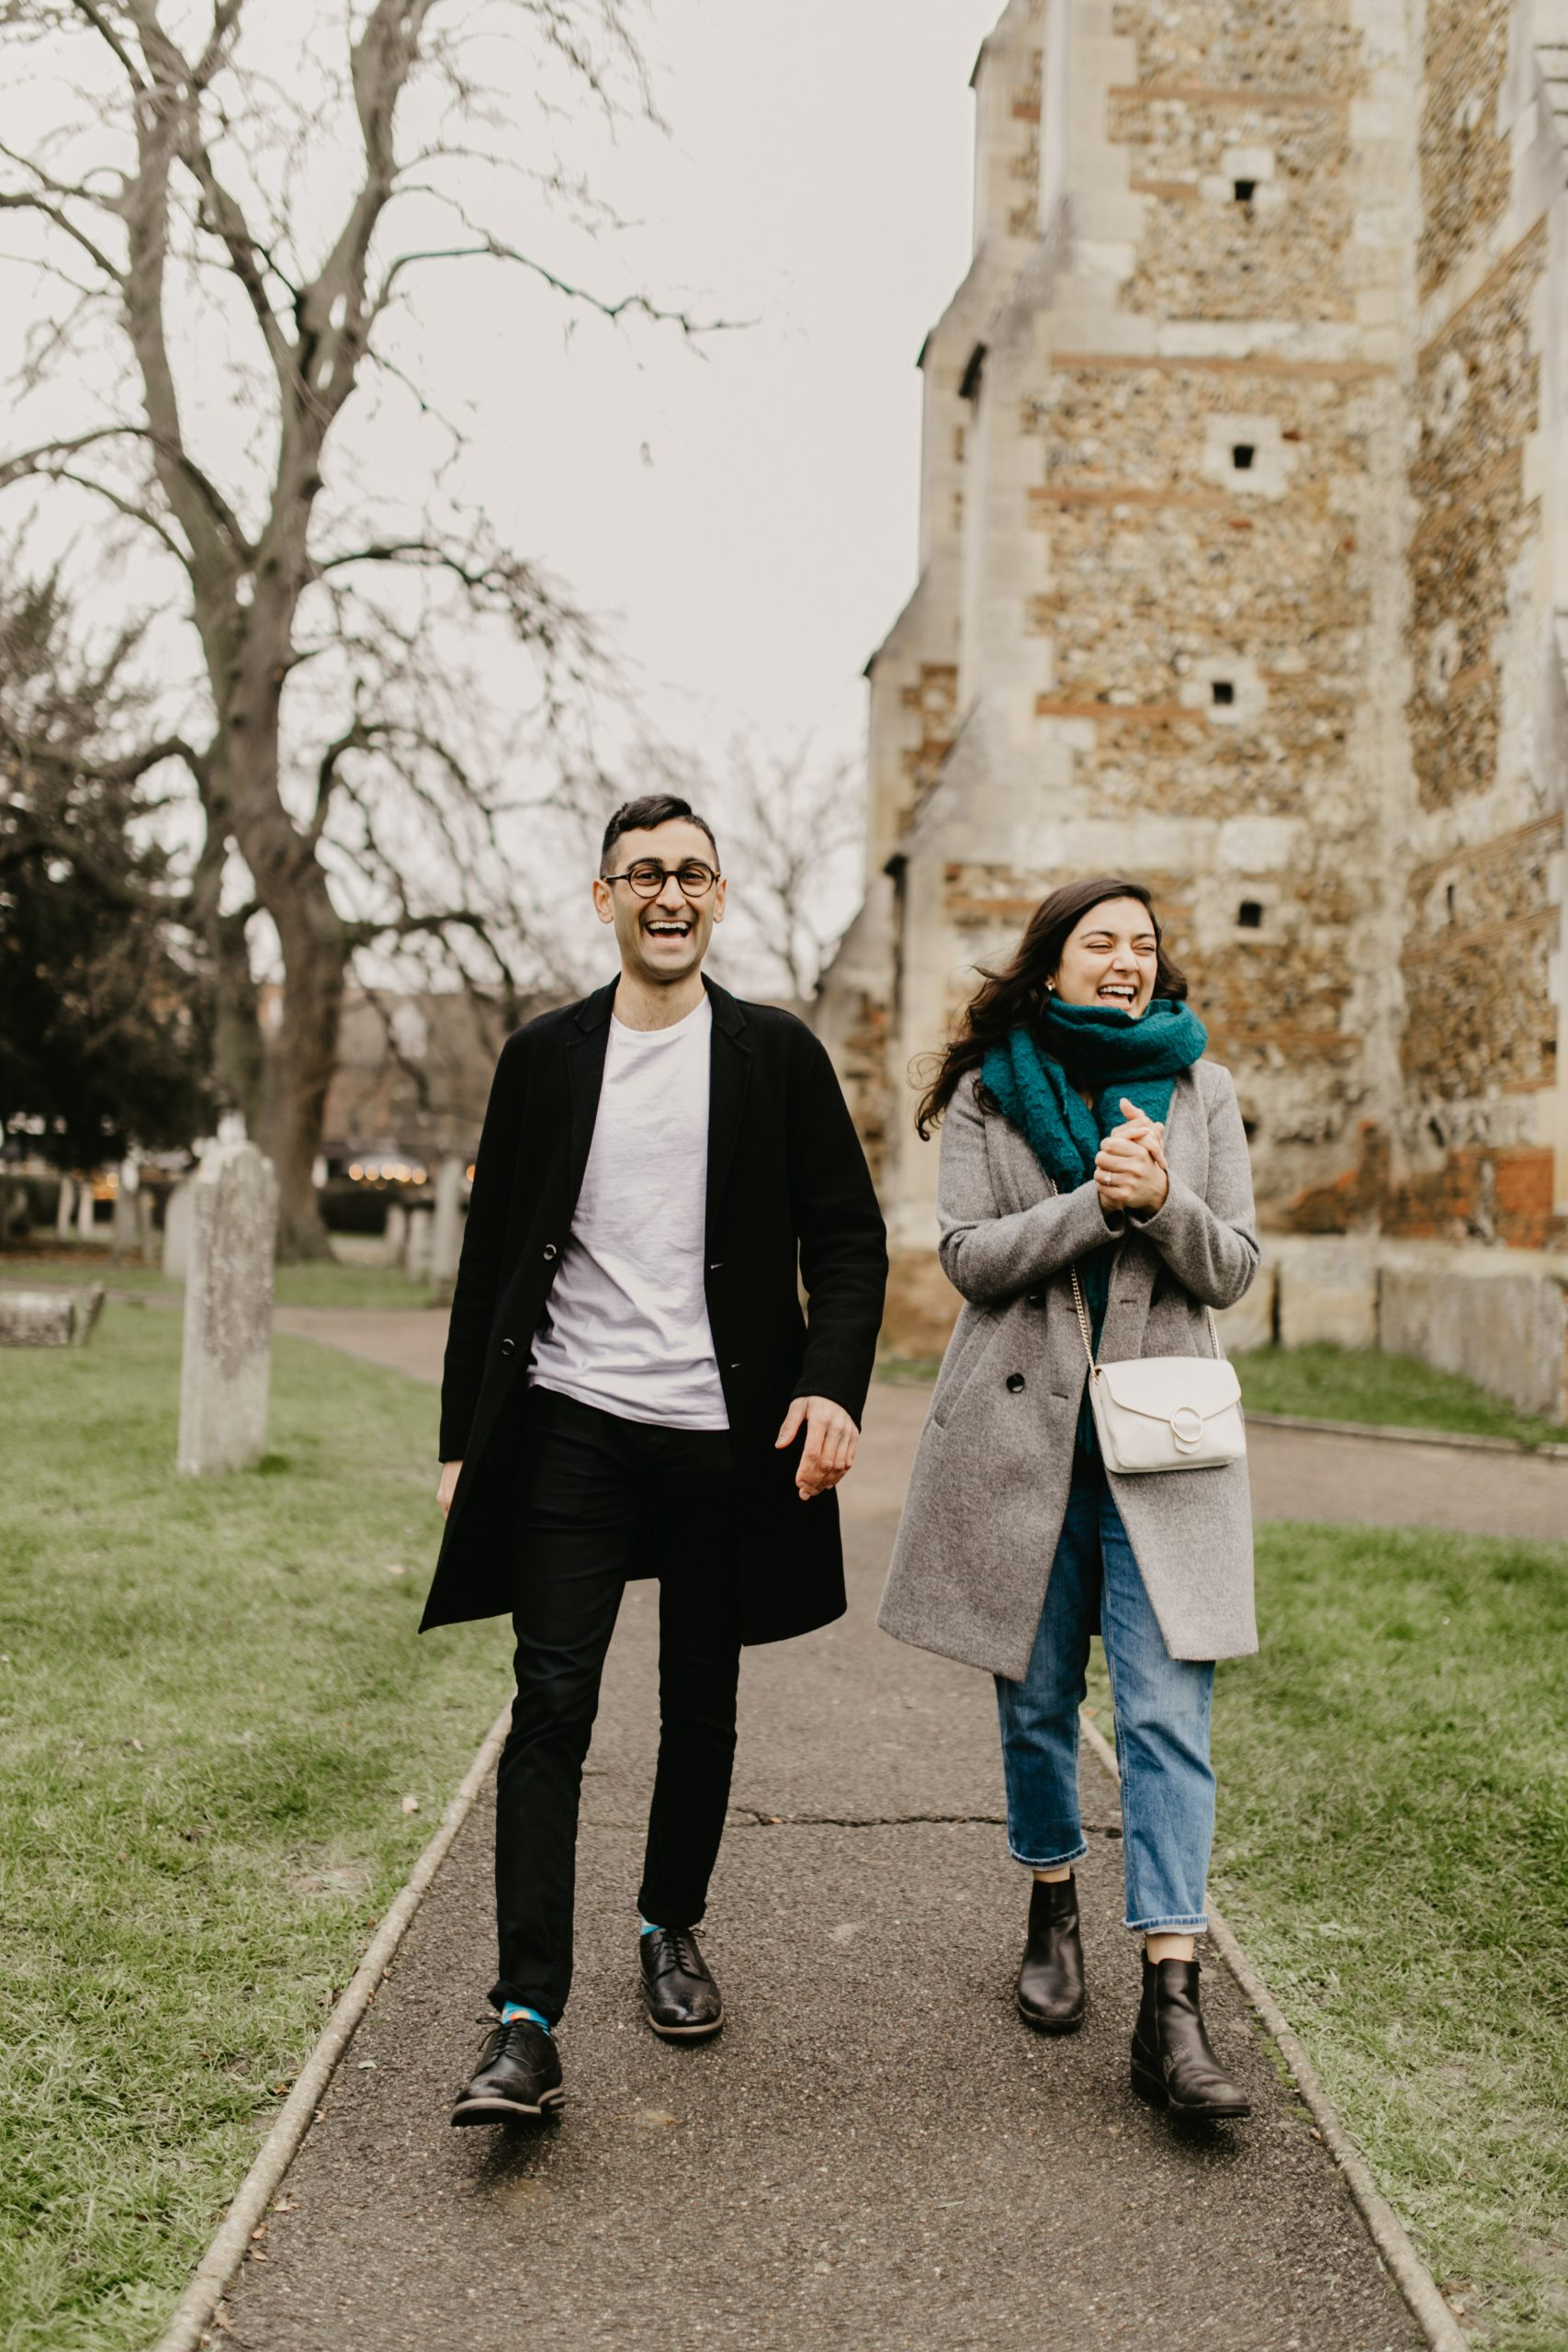 couple walking happily during their engagement shoot in 2020